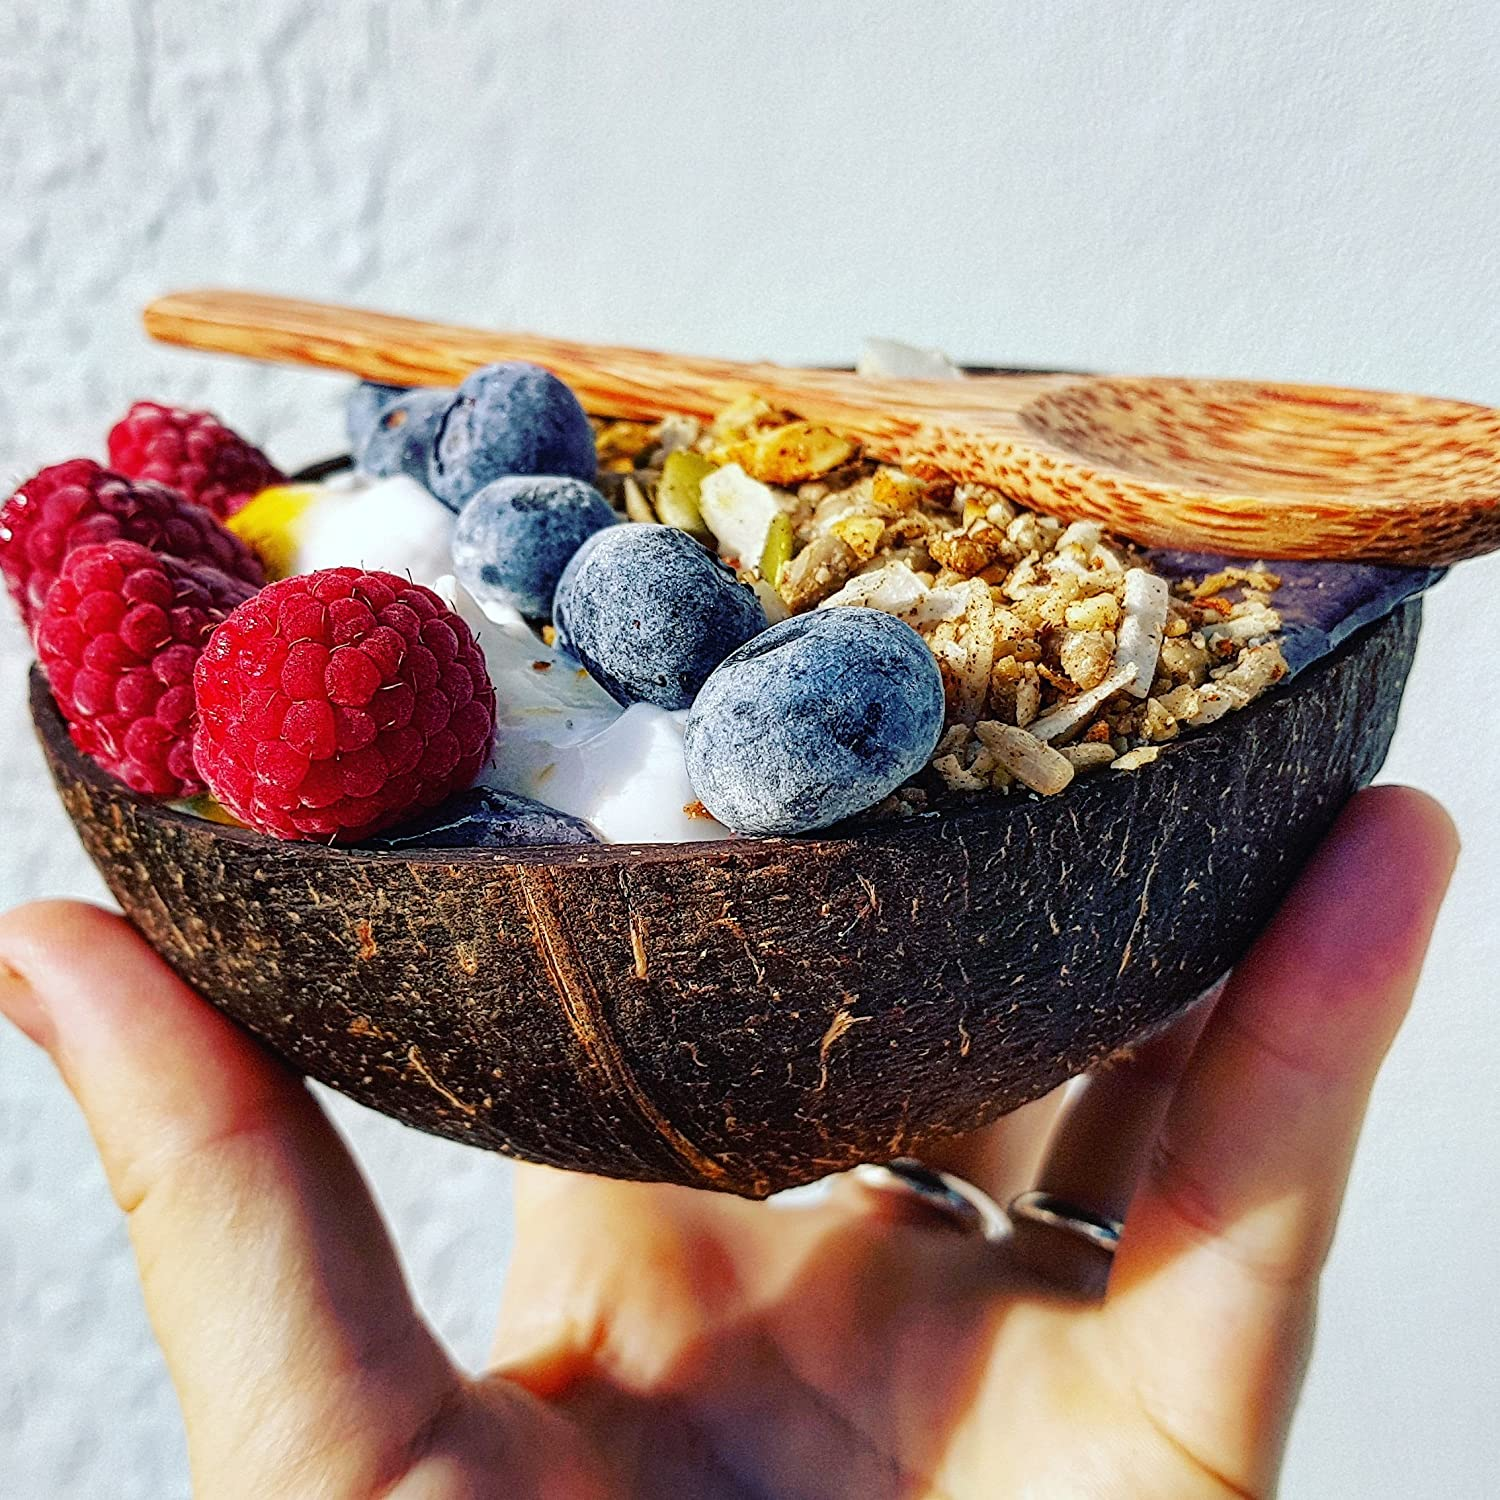 - 100/% Natural Hand Made Vegan Artisan Craft Coconut Bowls and Coconut Spoons Gift Set Made from Reclaimed Coconut Shells Organic Eco Friendly Set of 2 Coco Bowls + 2 Coco Spoons